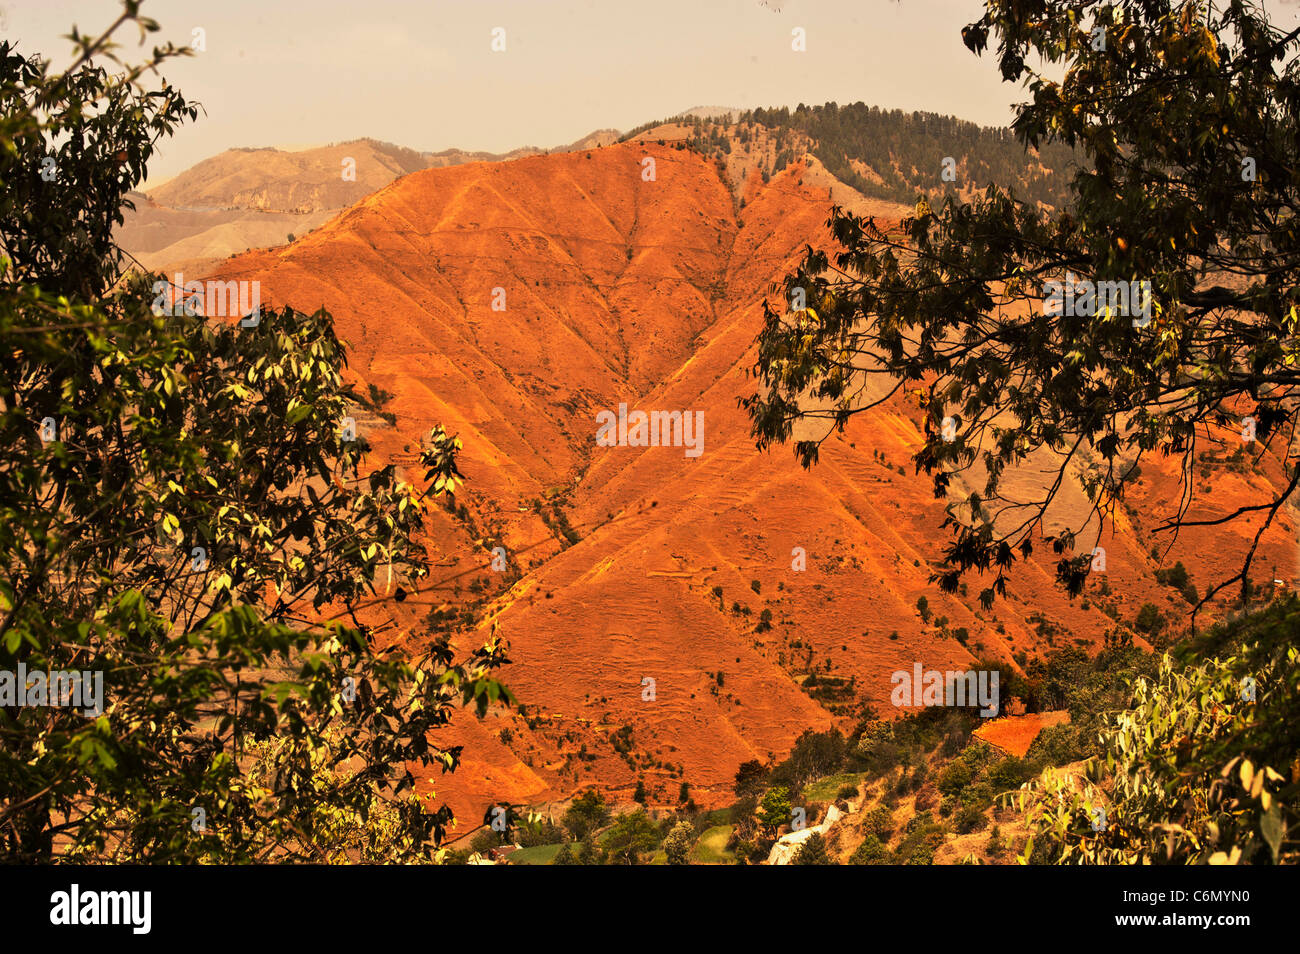 Ecological disaster on the Himalayas-Denudation of forest cover at the surrounding areas near Chakrata-Uttarakhand - Stock Image